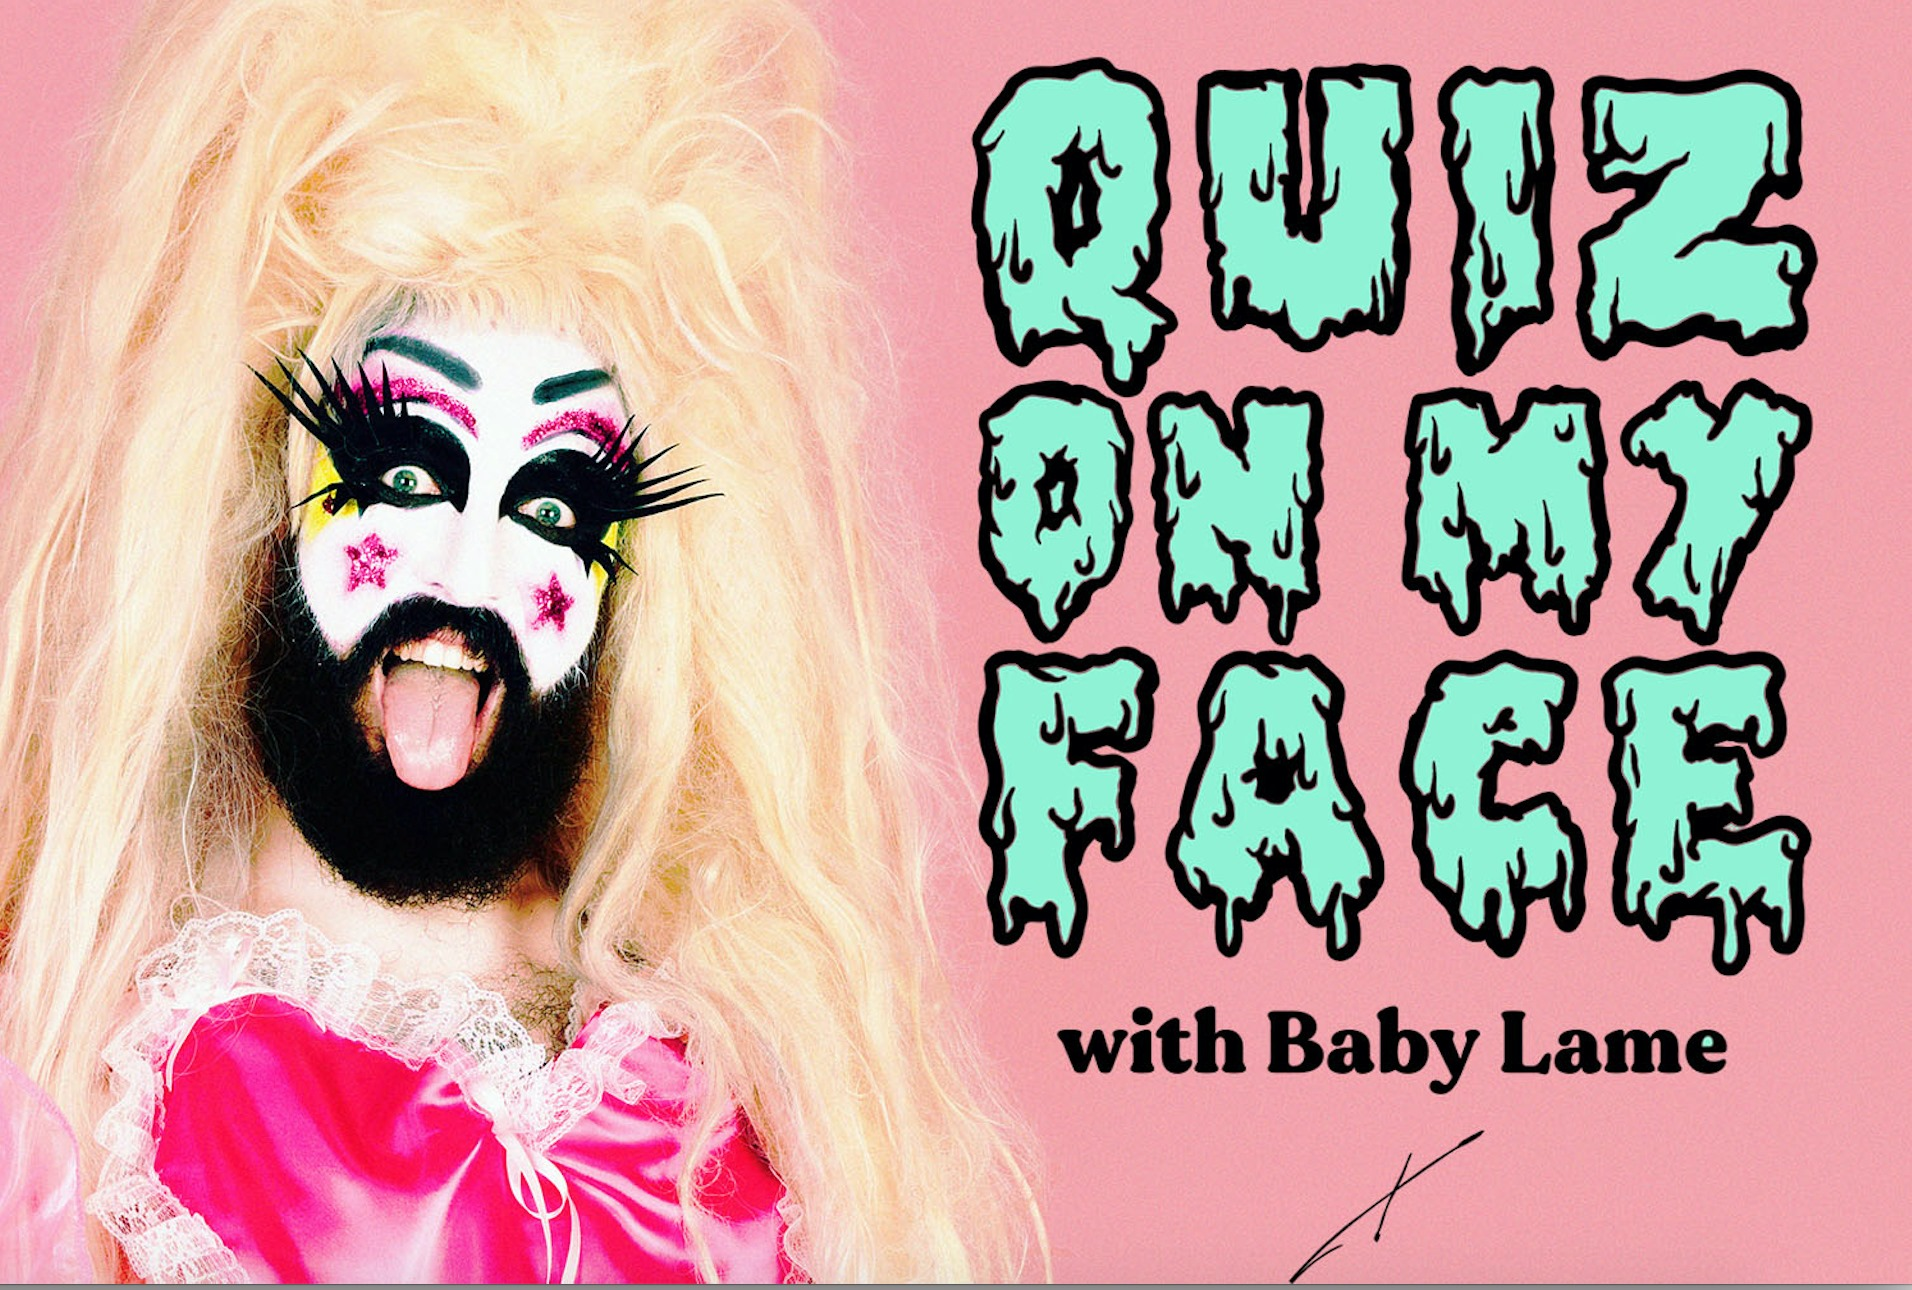 Quiz on My Face with Baby Lame